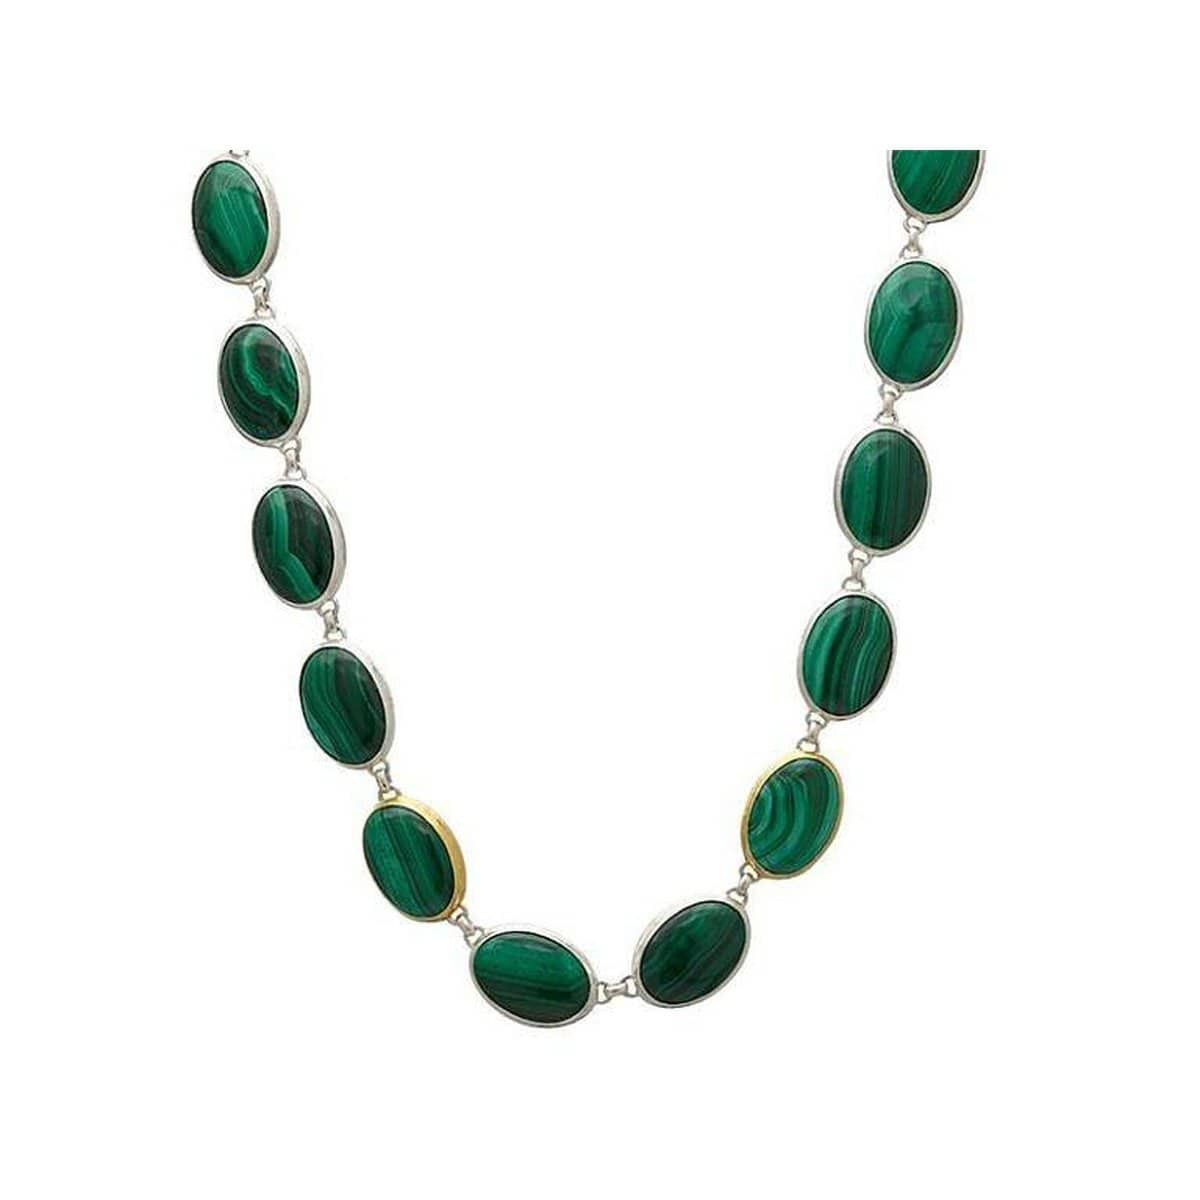 Galapagos Sterling Silver Malachite Necklace - SN-U26398-MAL-GURHAN-Renee Taylor Gallery